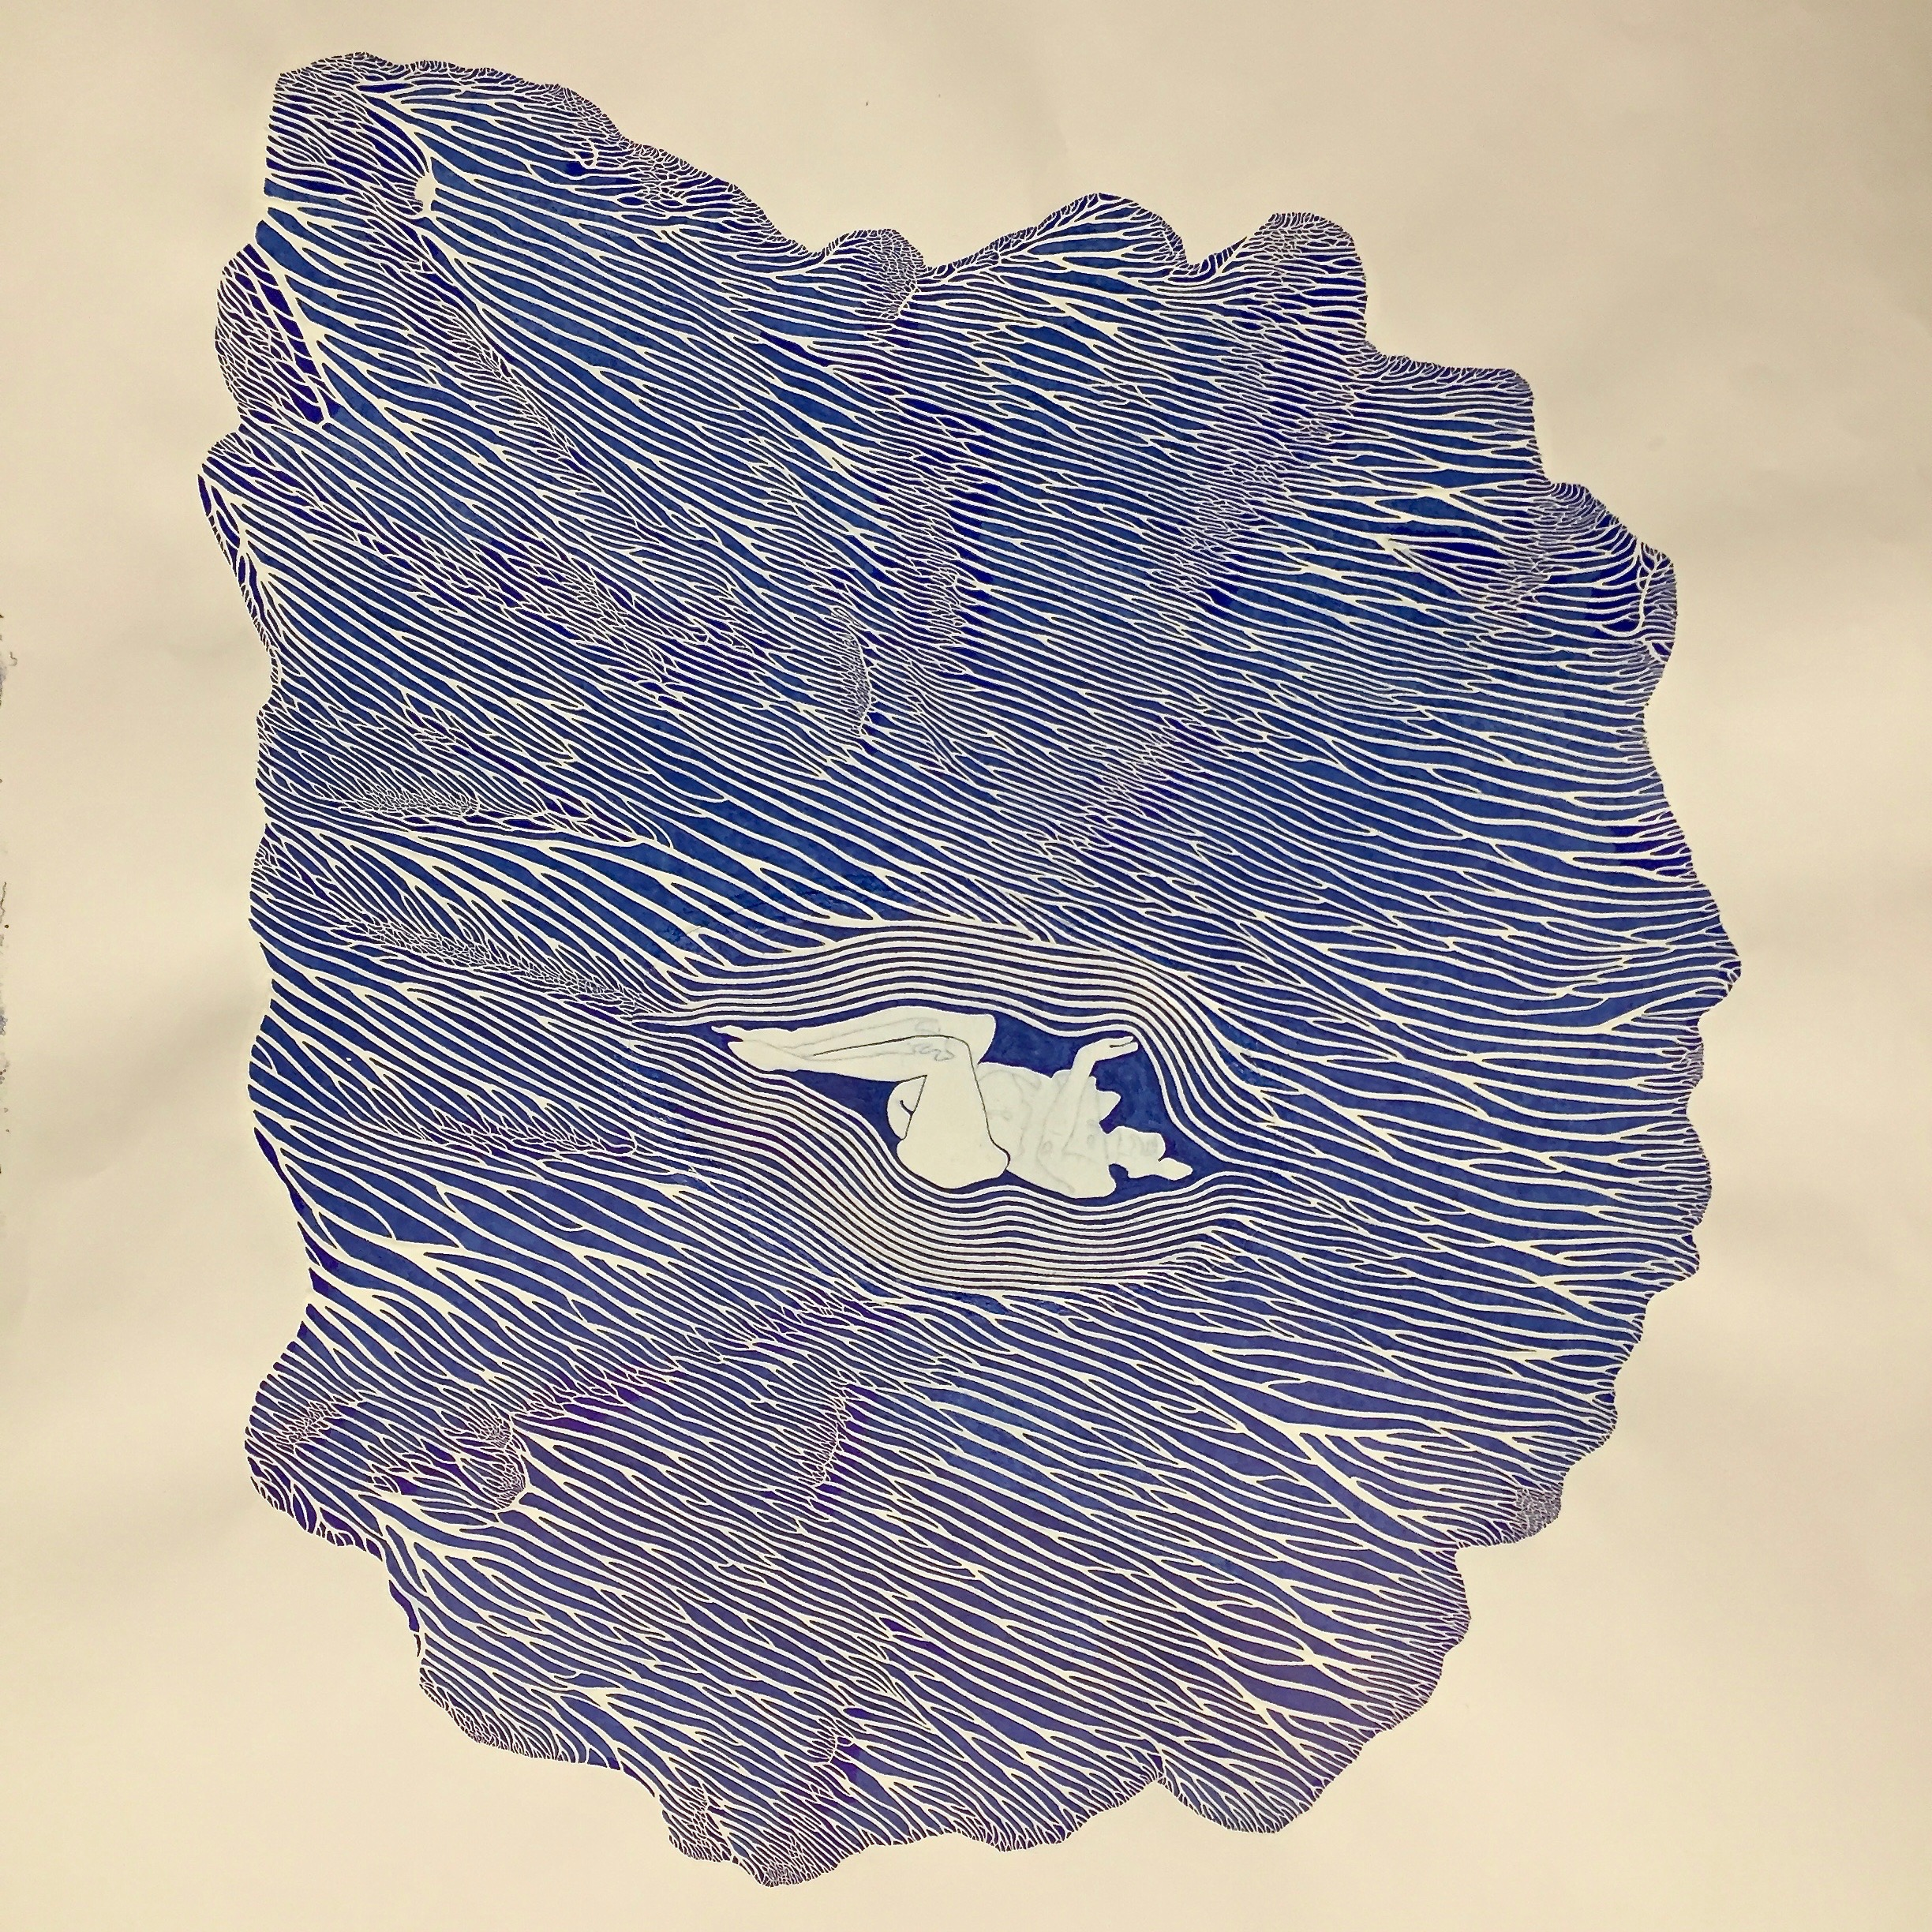 Untitled  by Ethan Barretto   Untitled  is blue ink and gesso.   This piece was first published in Quarto's Spring 2018 edition.